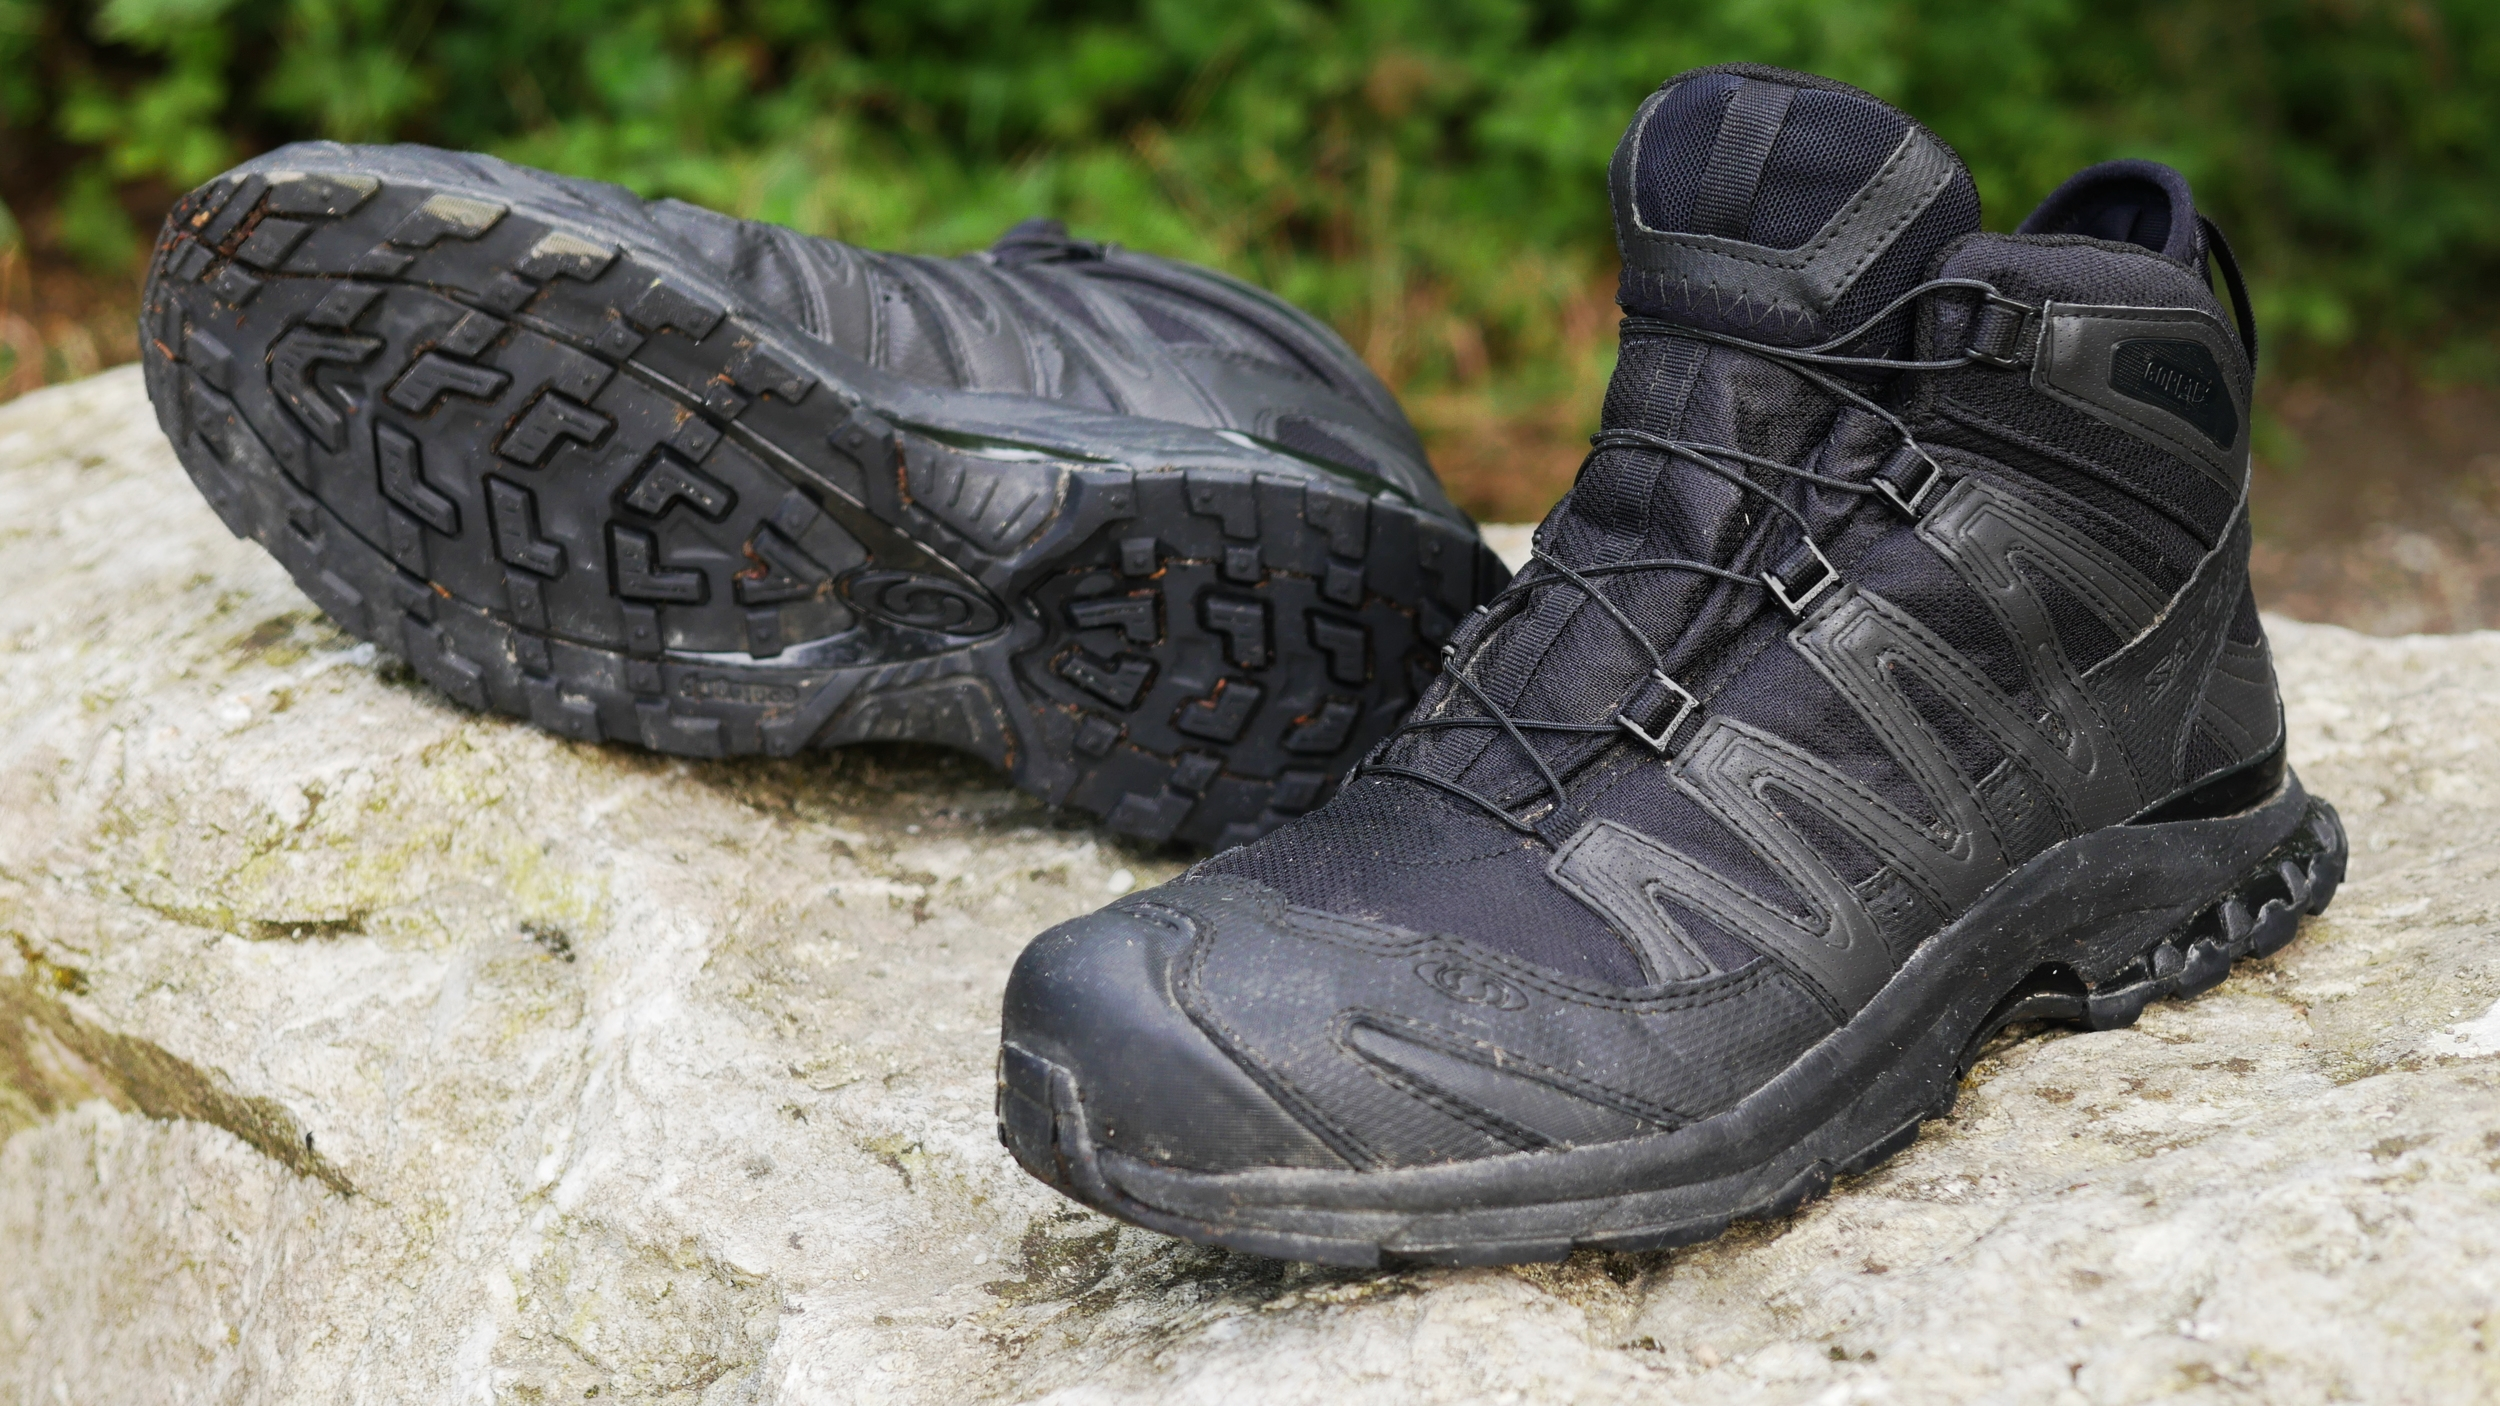 plus récent c2058 cc1f6 Salomon Forces XA Pro — Gear Guide Germany